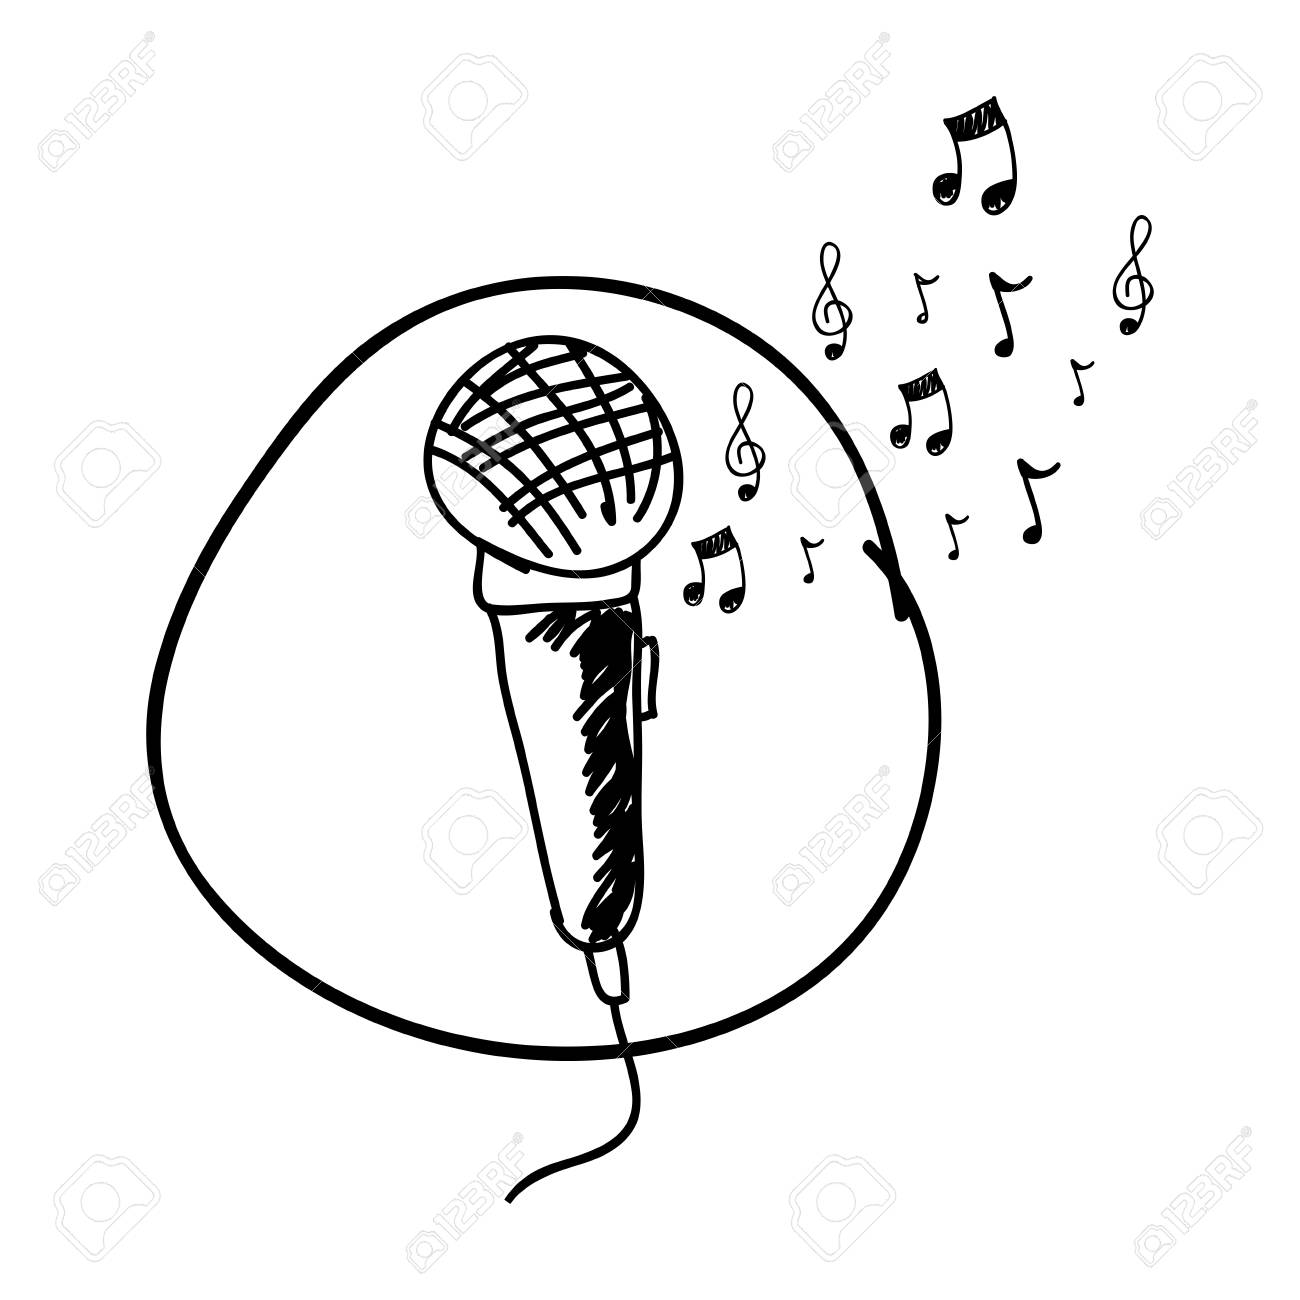 Monochrome Hand Drawing Of Microphone In Circle And Musical Notes